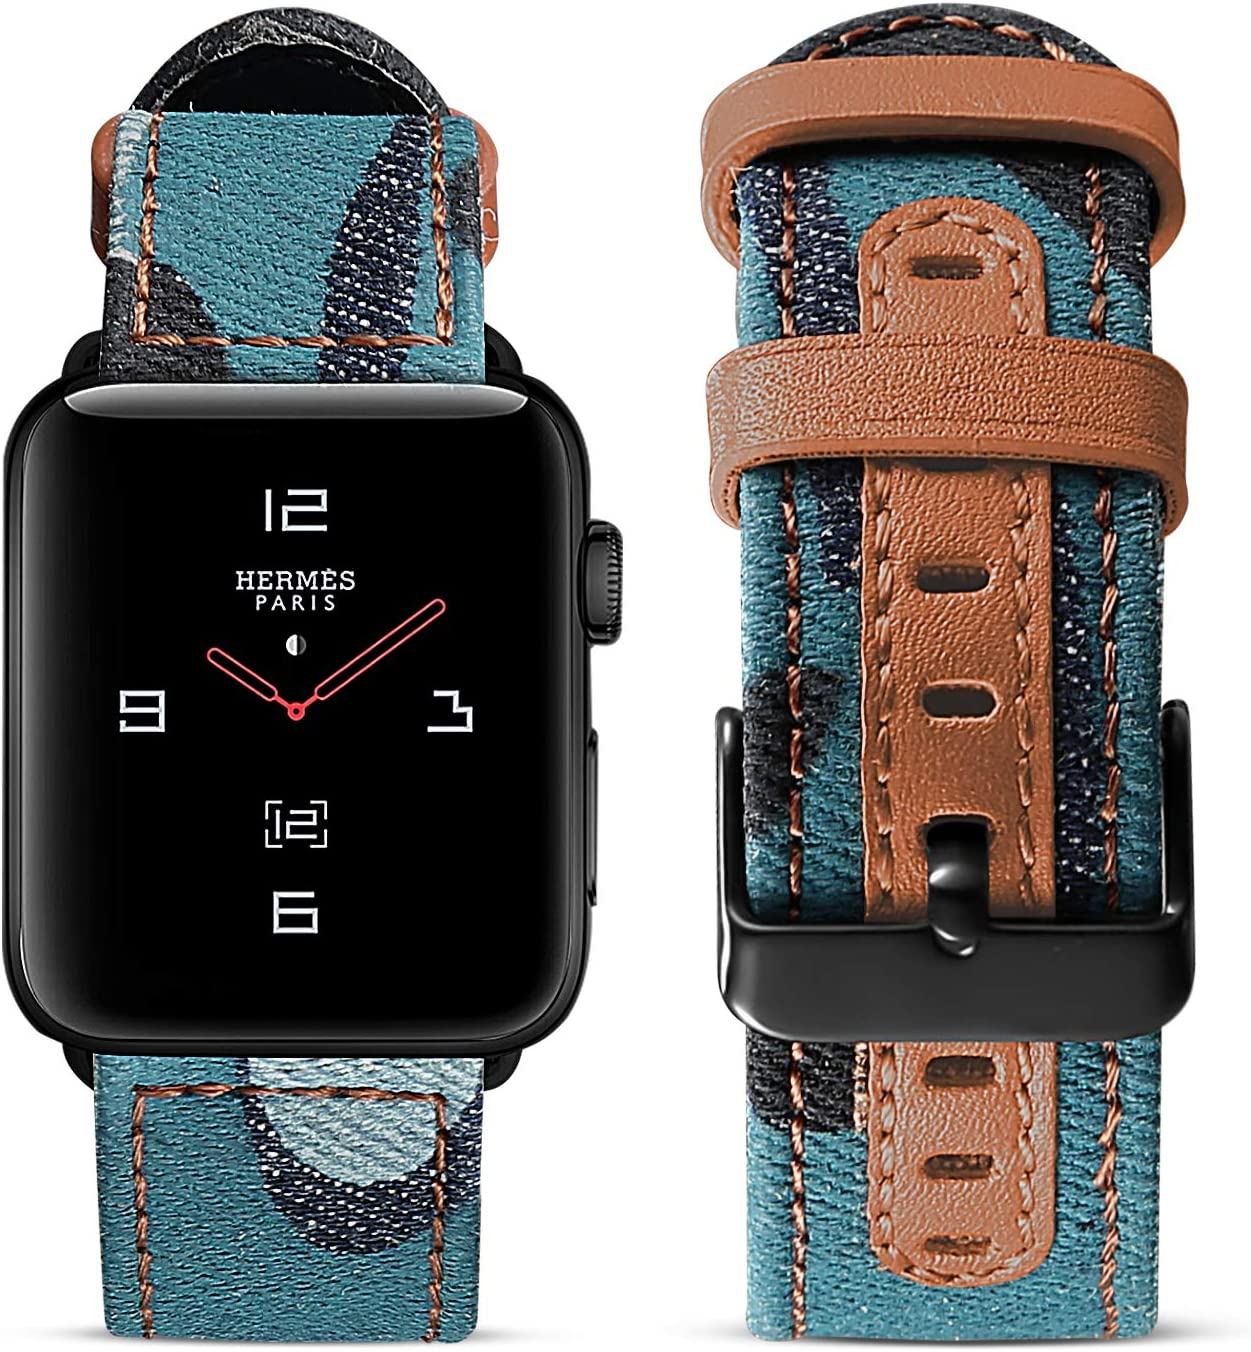 SKYLET Compatible with Apple Watch Bands 40mm 38mm Series 6 5 4 3 2 1 SE Men Women, Soft Canvas Leather Replacement Breathable Wristband with Metal Clasp Black